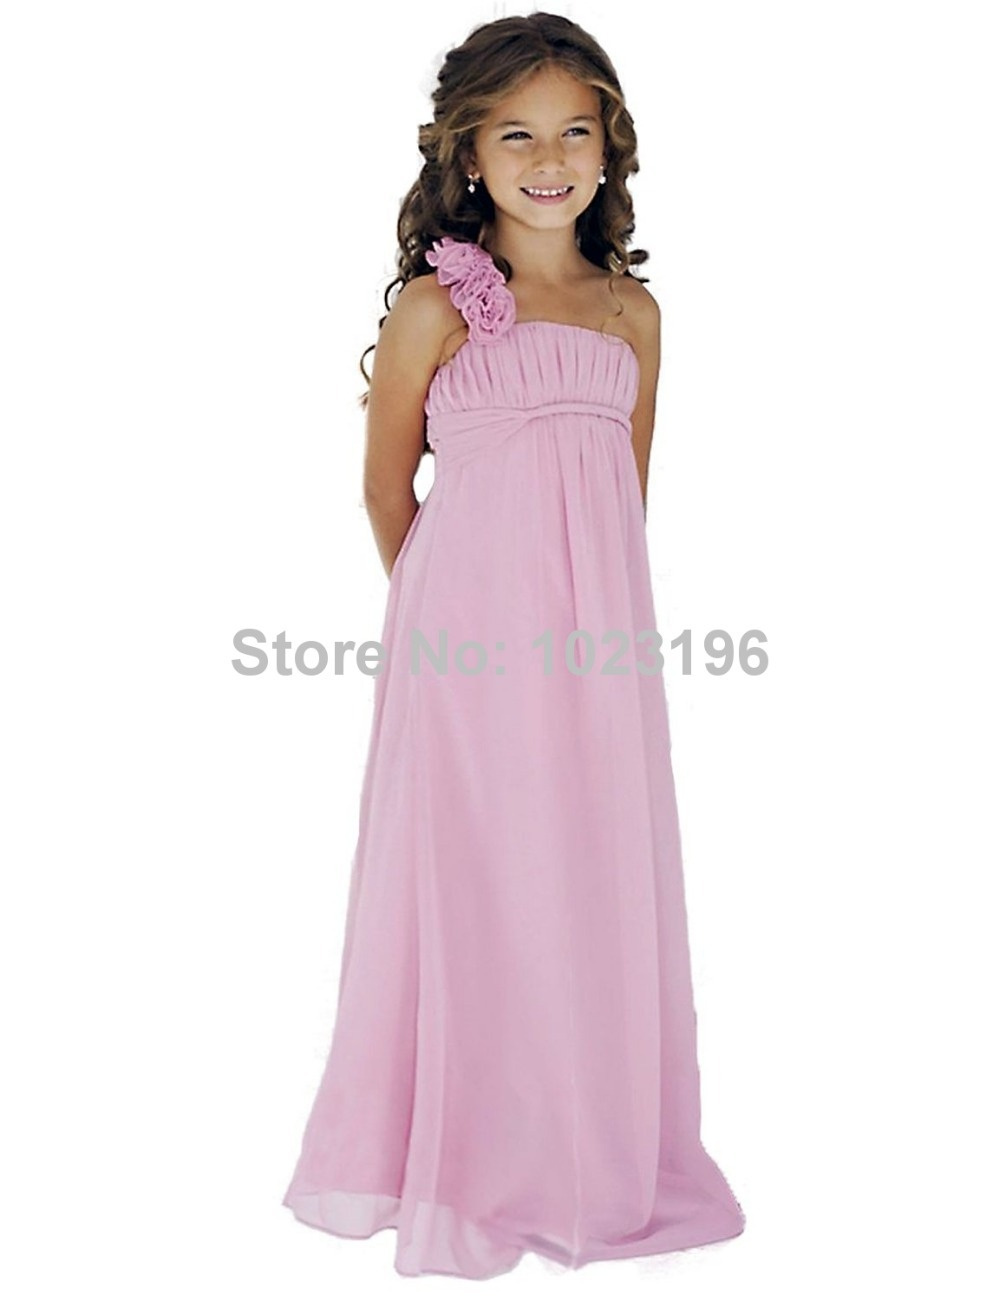 2015 Real Simple Pink Chiffon Long Flower Girl Dresses For Beach Weddings One-Shoulder With Handmade Flowers Cheap Little Girls(China (Mainland))